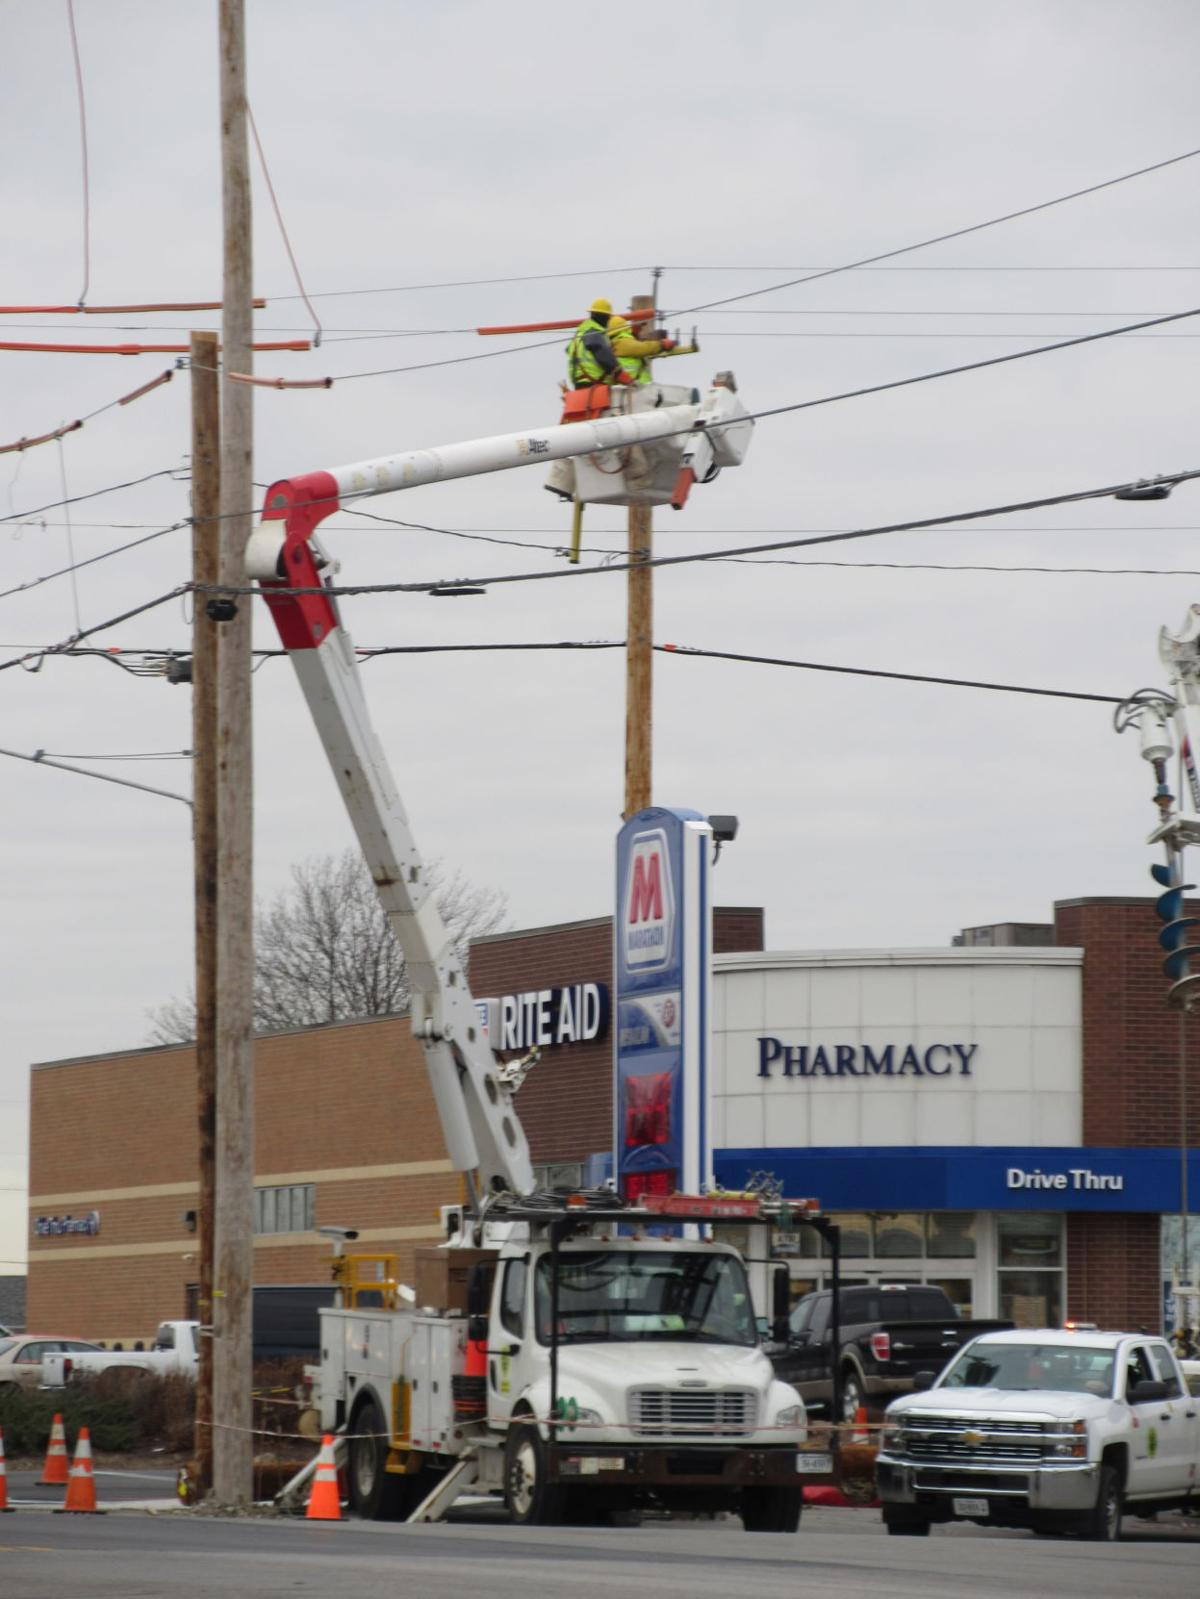 Utility work in Paulding   Local News   crescent-news.com